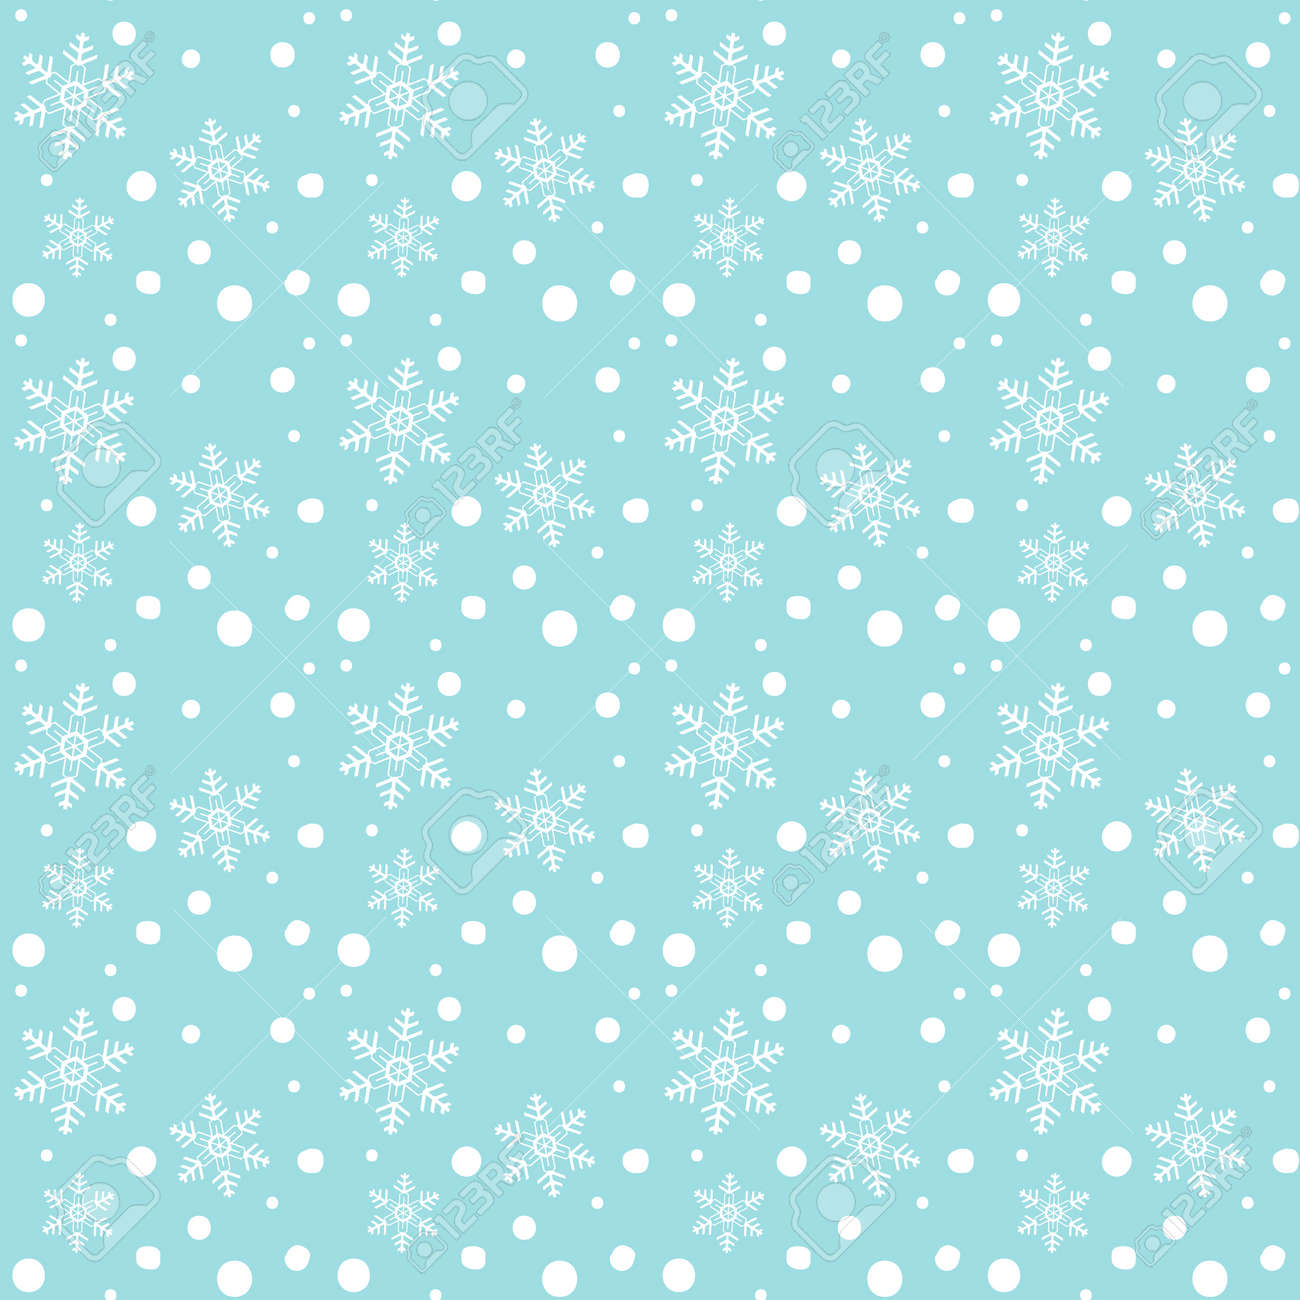 Cartoon Snowflakes Falling Seamless Pattern White Snowfall On Royalty Free Cliparts Vectors And Stock Illustration Image 90043722